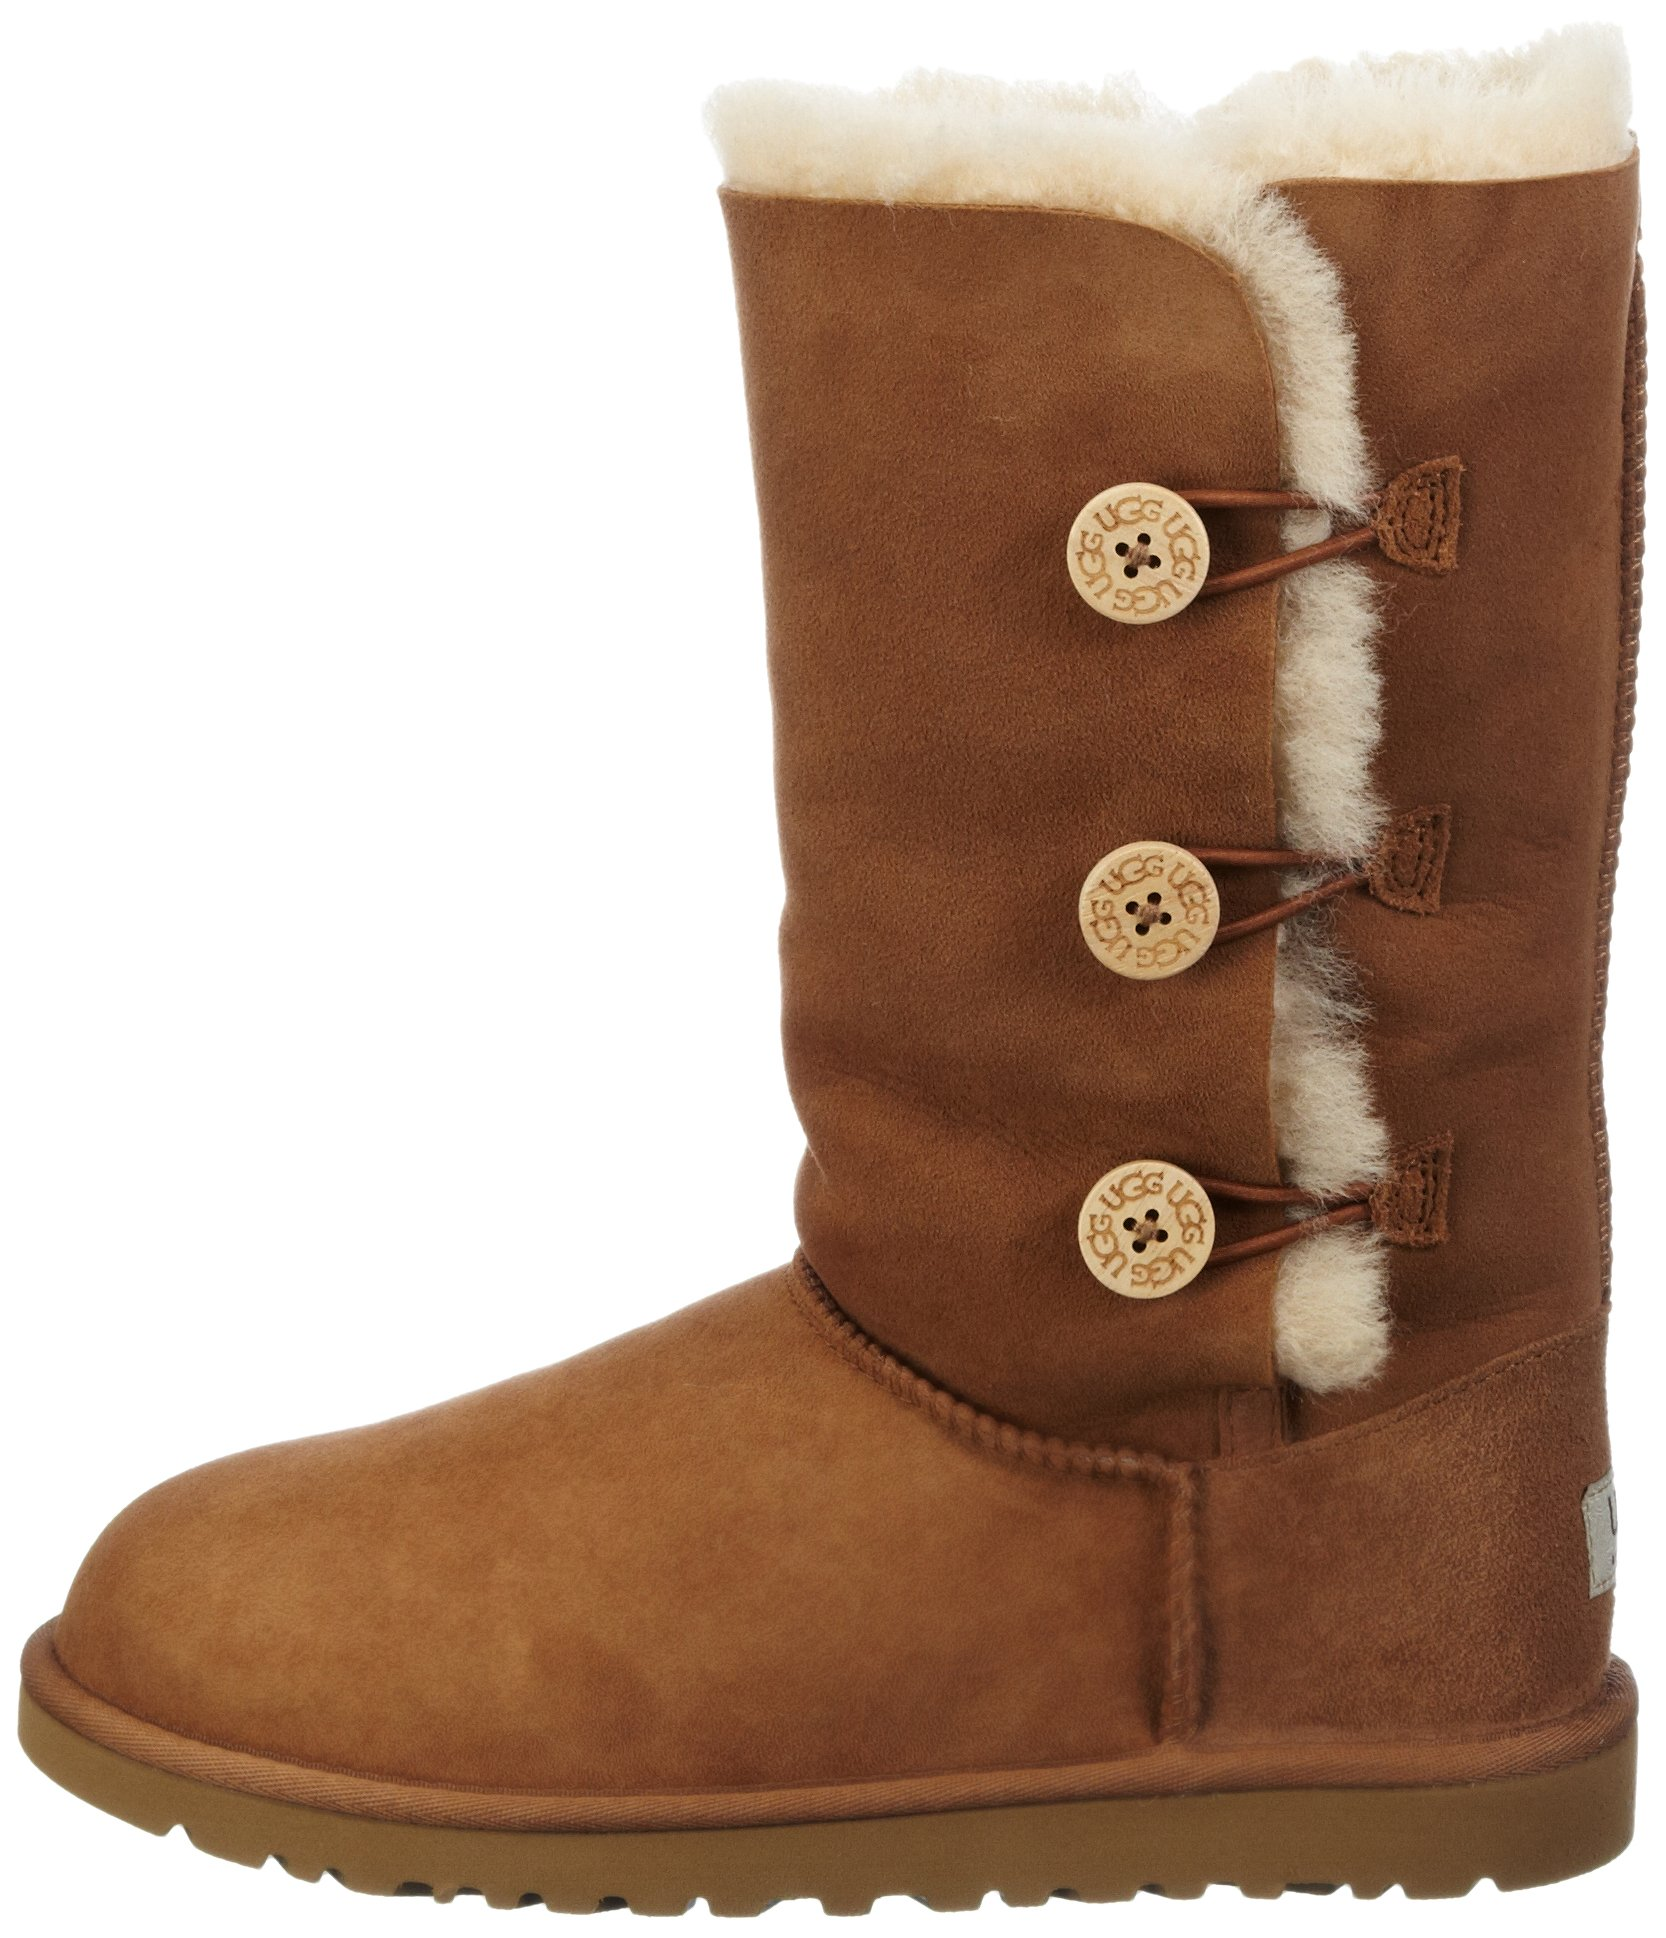 Kid's UGG Bailey Button Triplet chestnut size 4 us by UGG (Image #5)